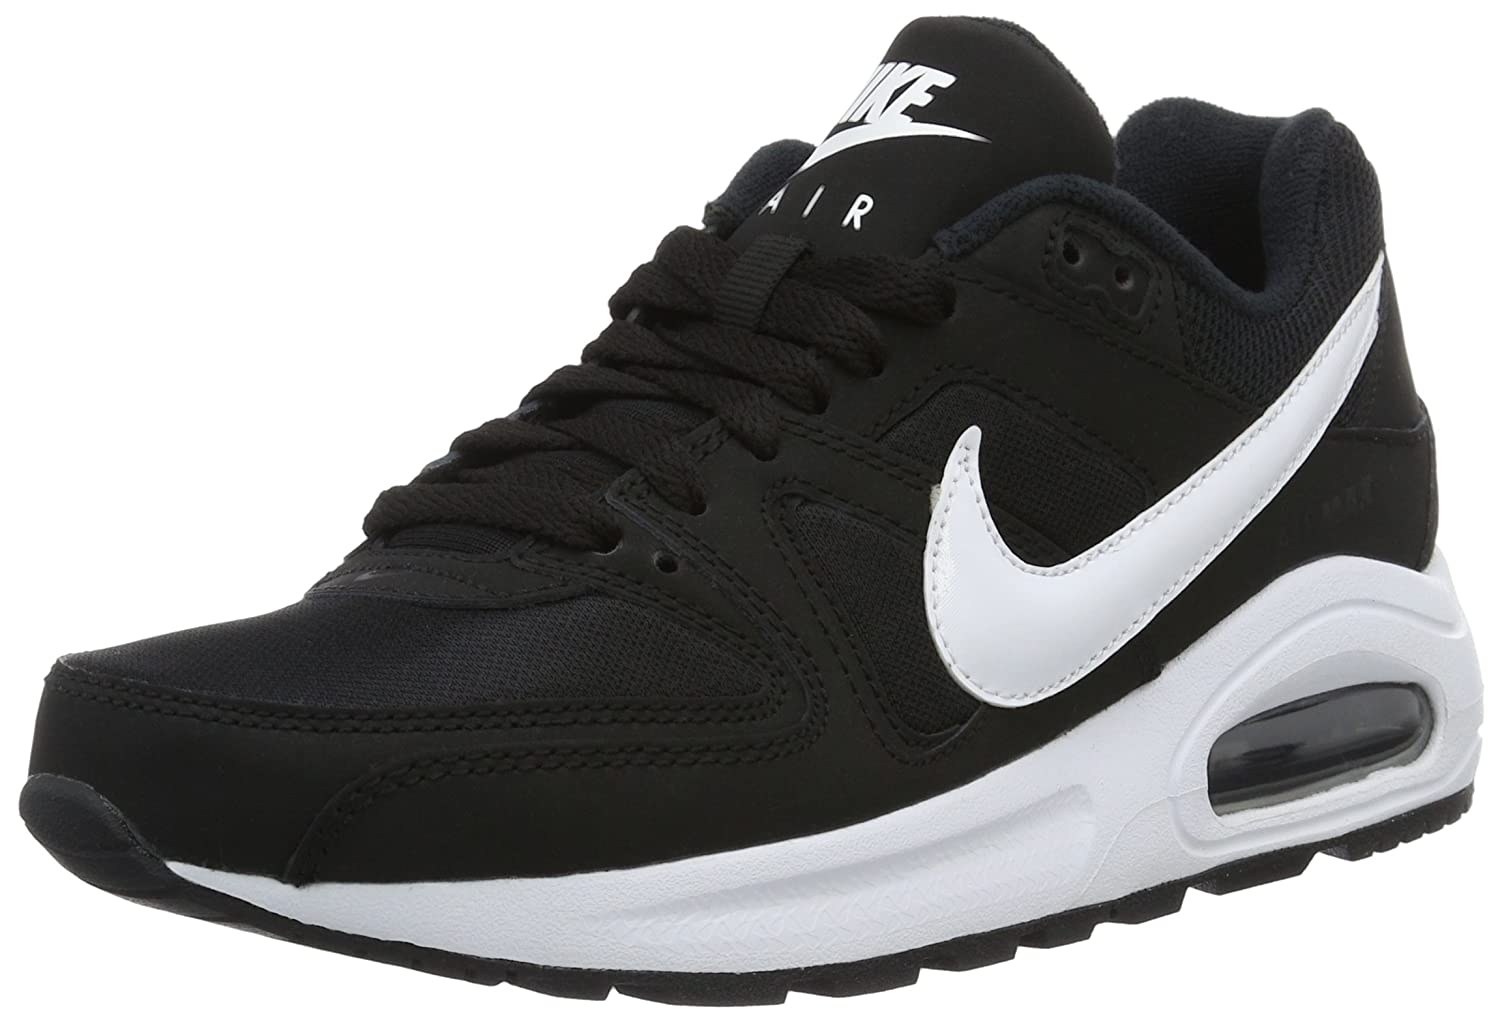 Nike Air Max Command Flex LTR (GS) Sneaker, EU Shoe Size:EUR 38.5, Color:Black